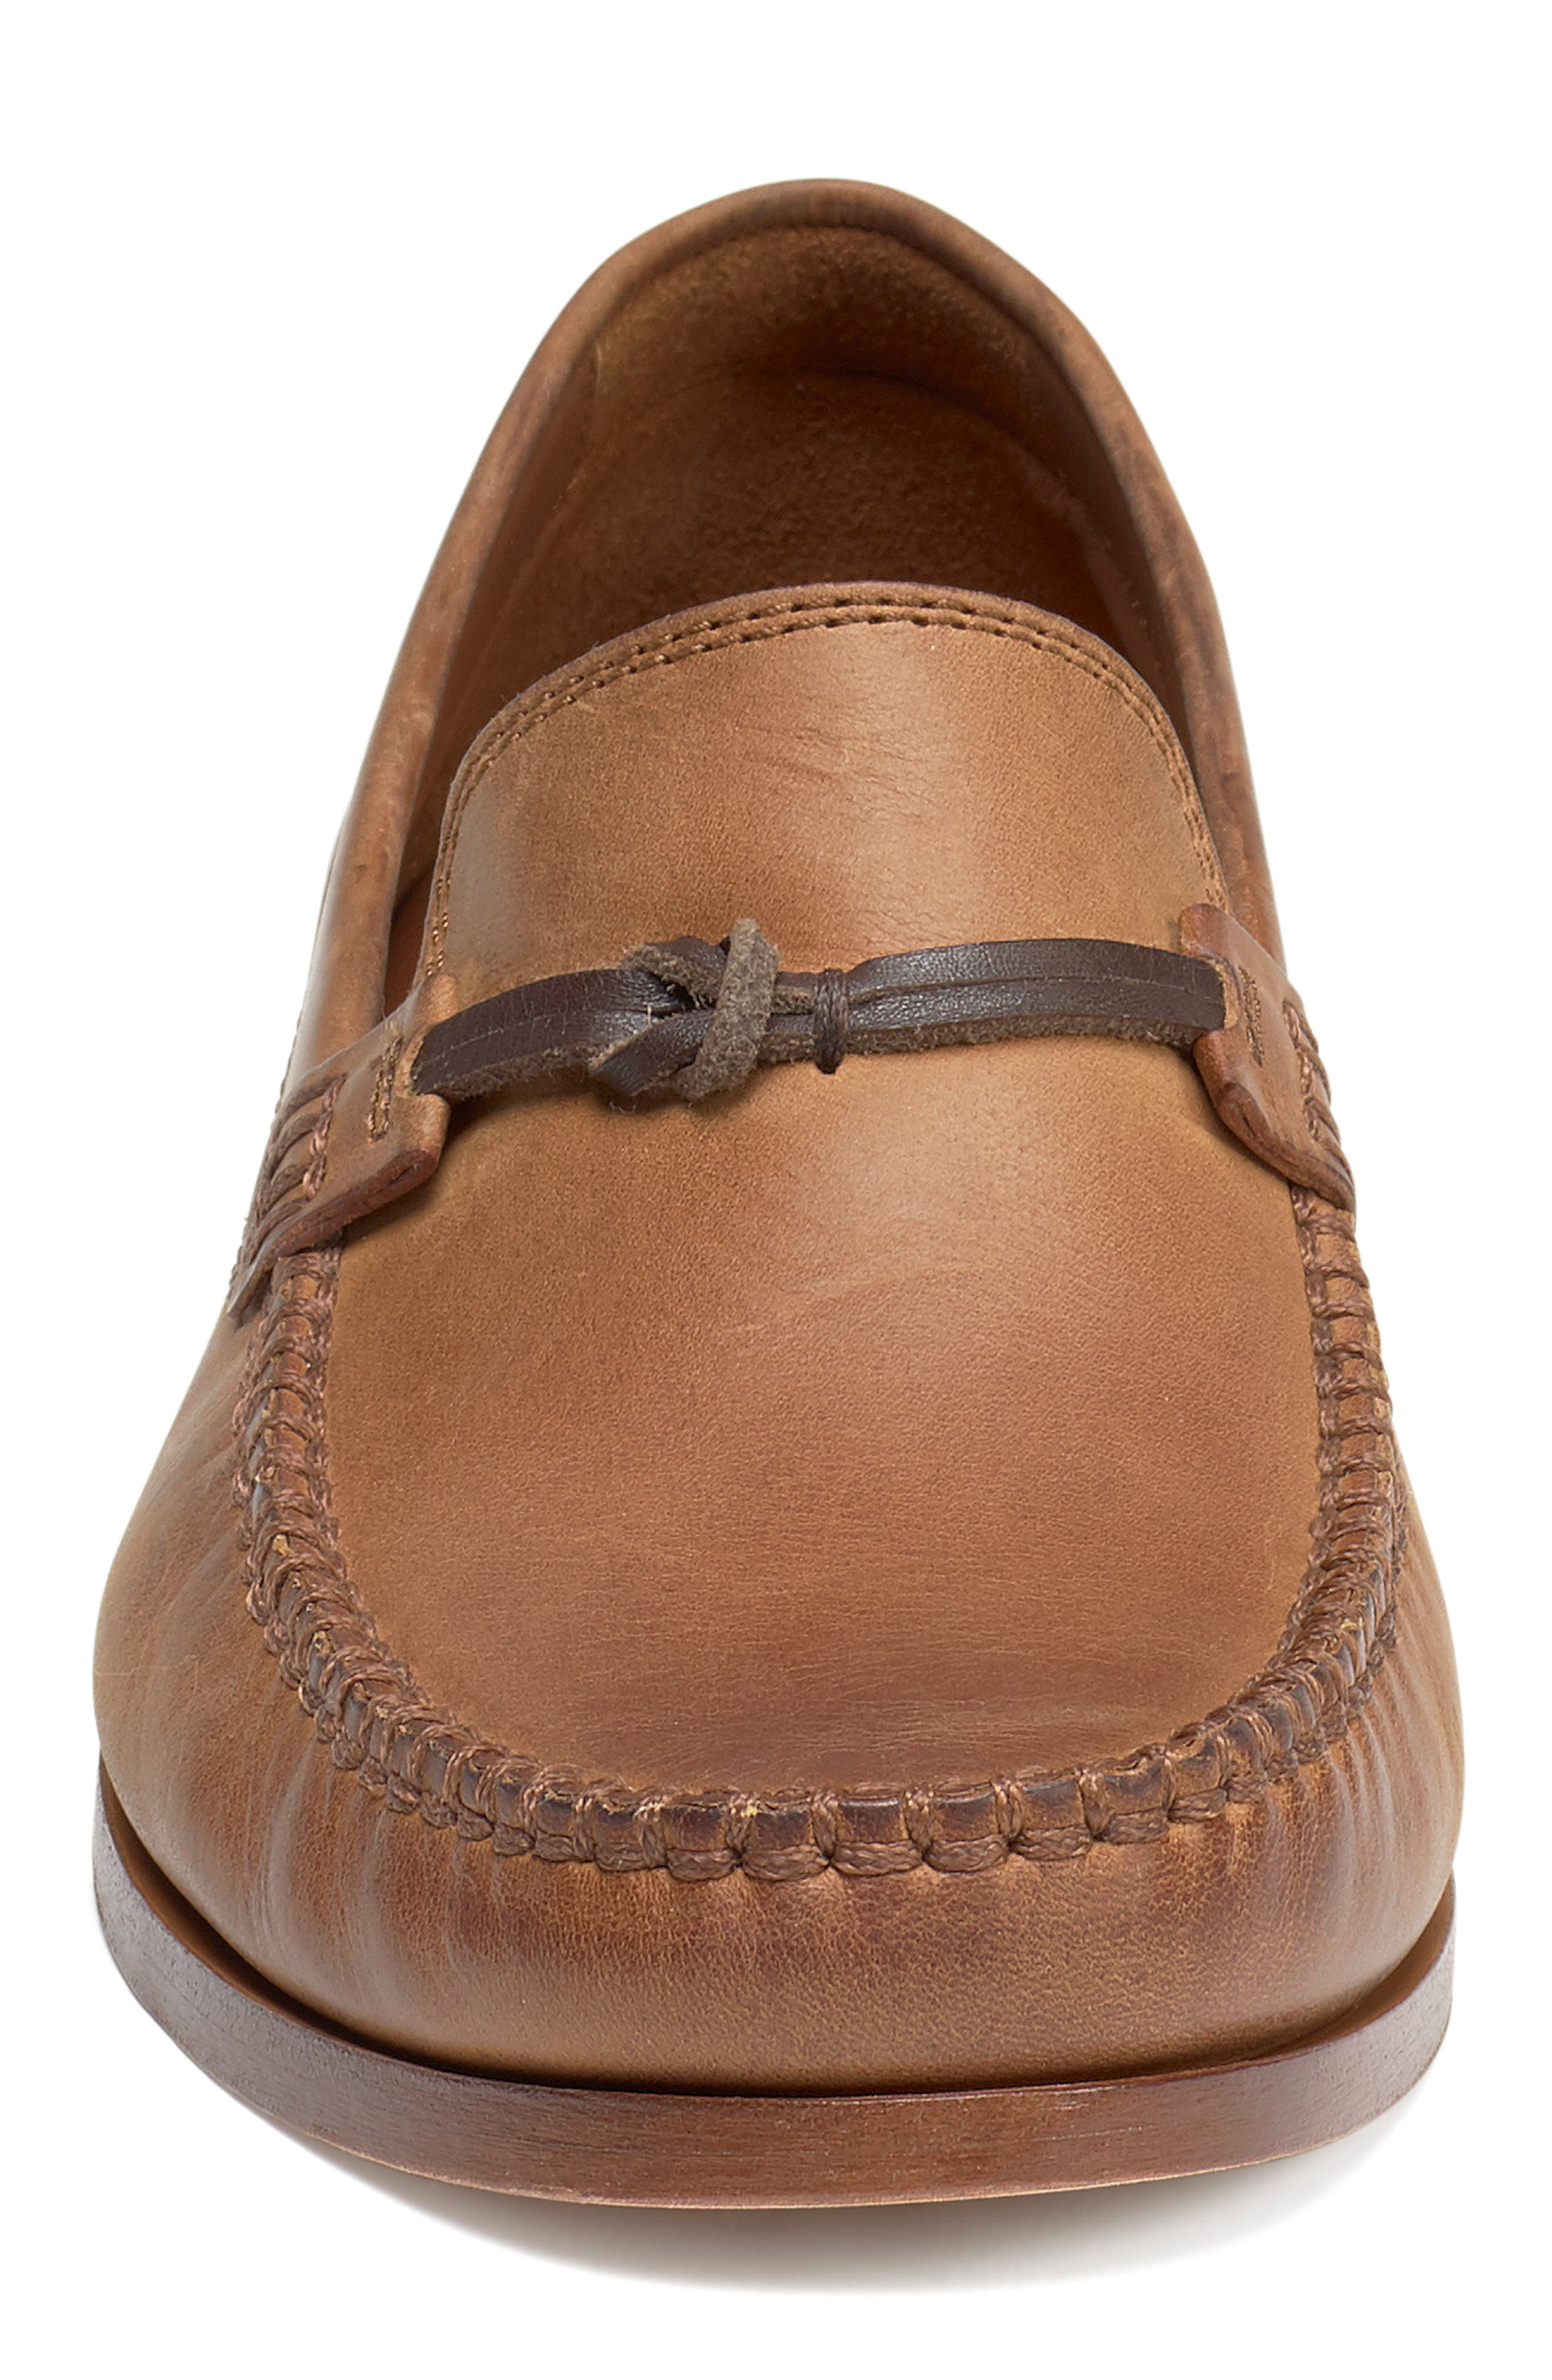 'Sawyer' Loafer,                             Alternate thumbnail 4, color,                             TAN LEATHER